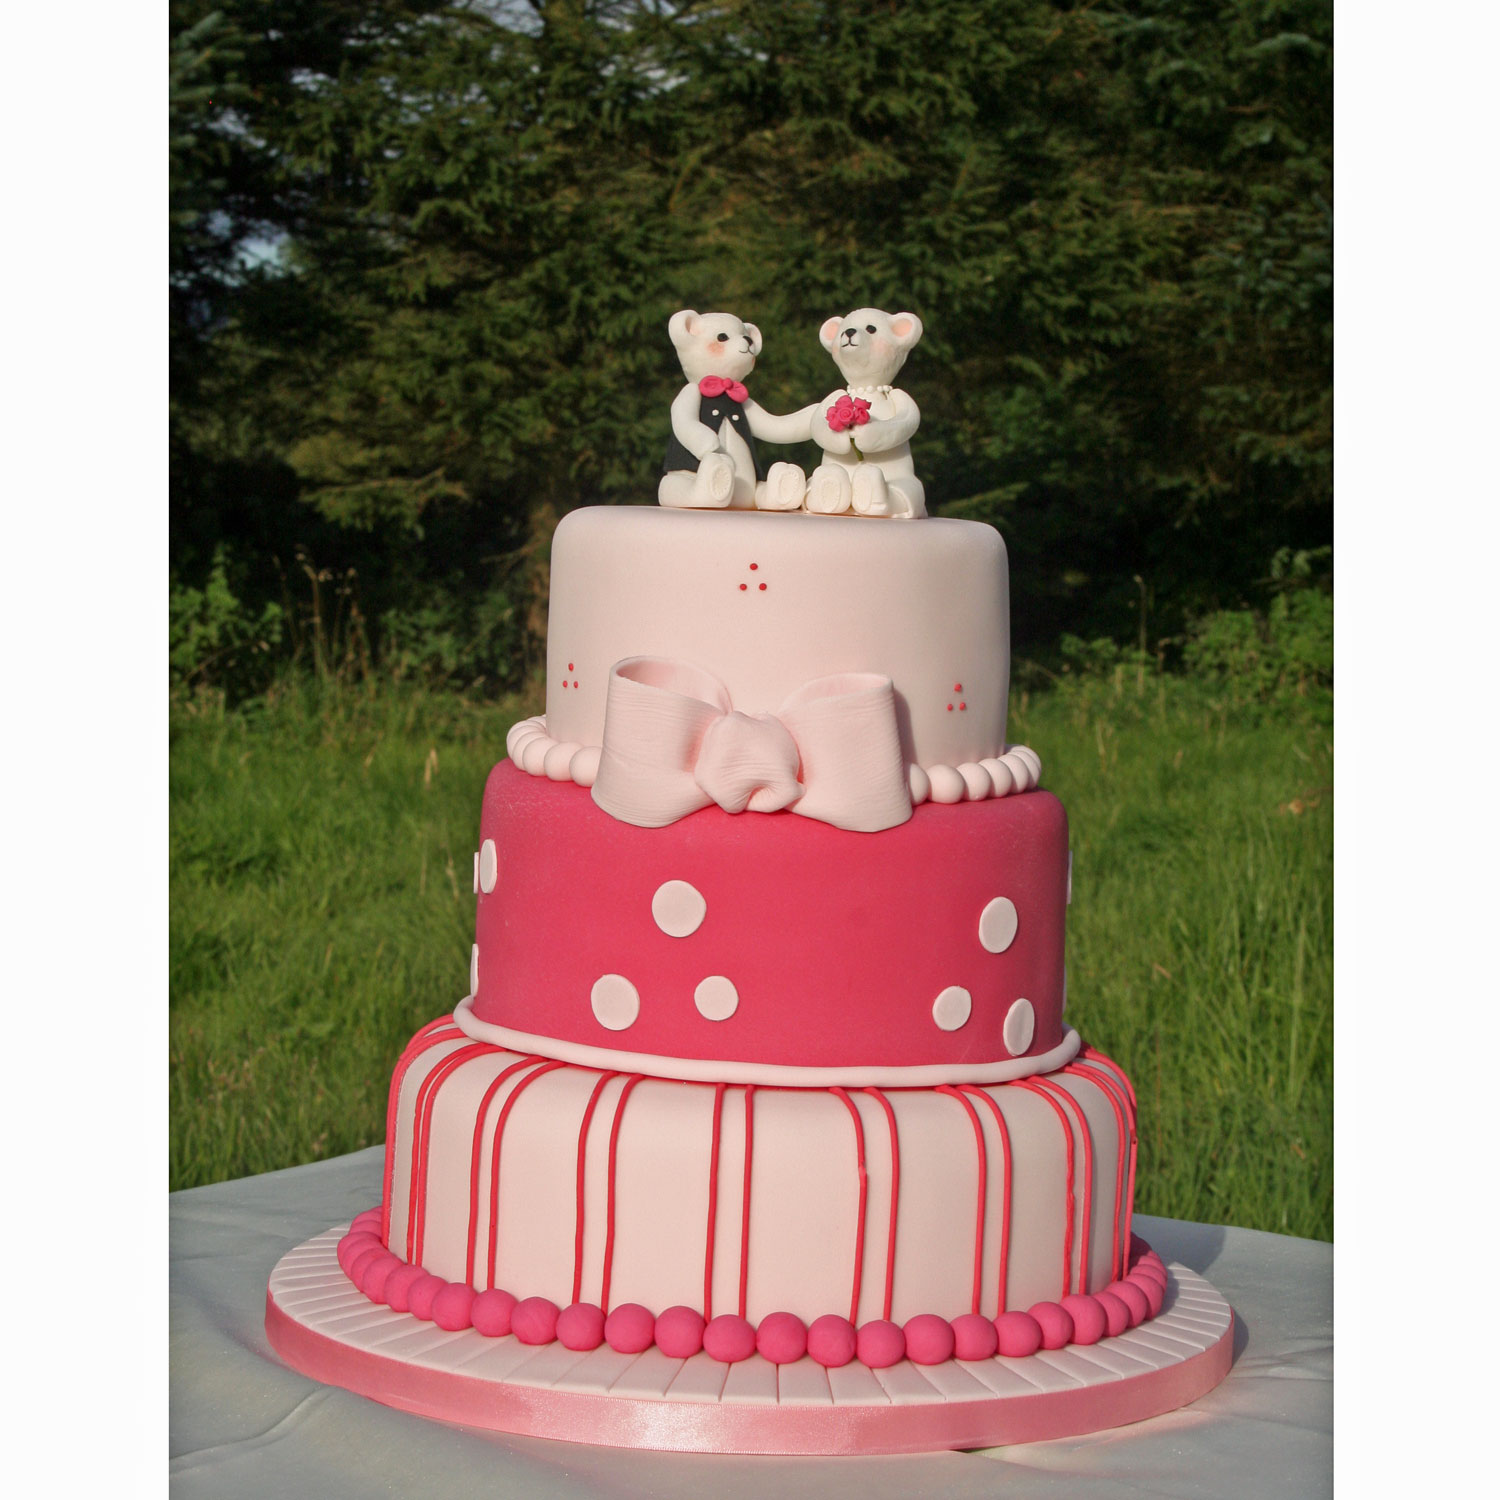 Wedding Bears on a Rasberry Pink Themed Cake